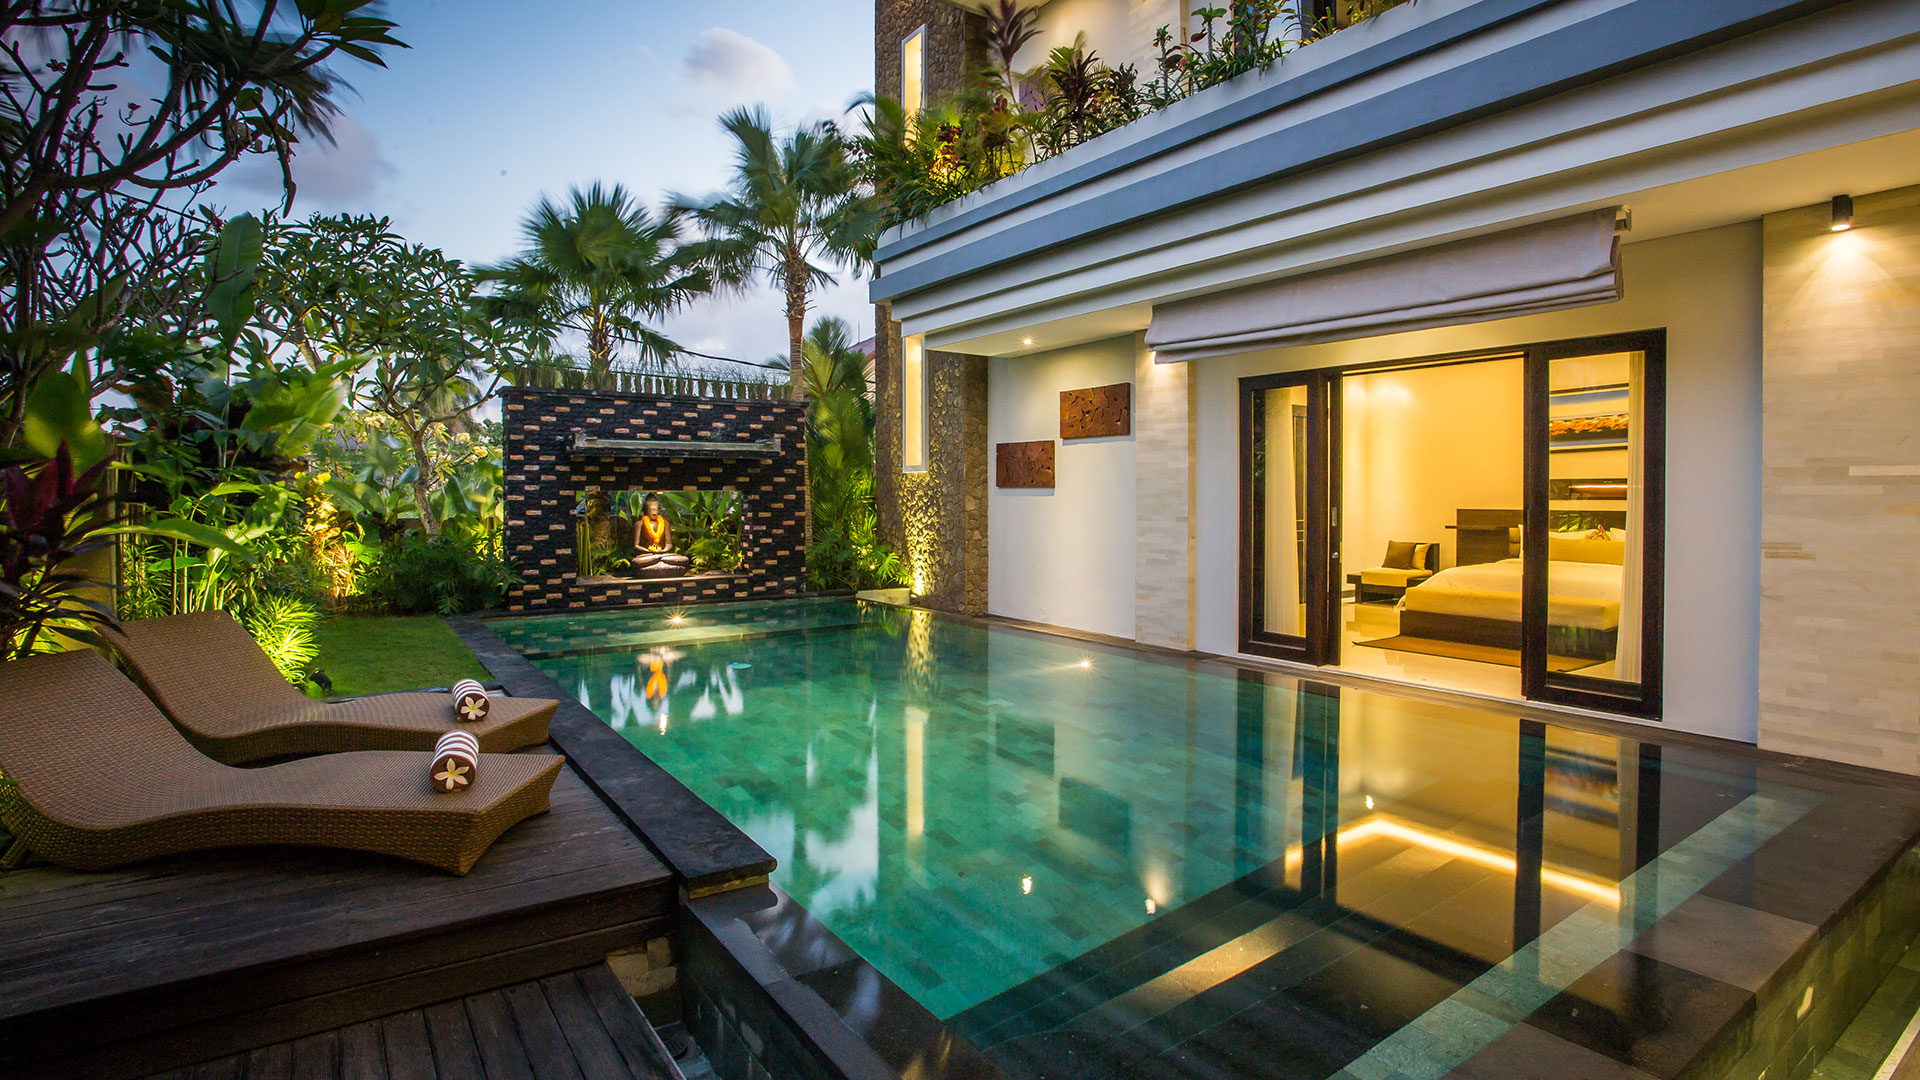 The Amarta is brand new luxury 3 bedroom villas located in Jimbaran, Bali. It has luxury minimalist concept just...